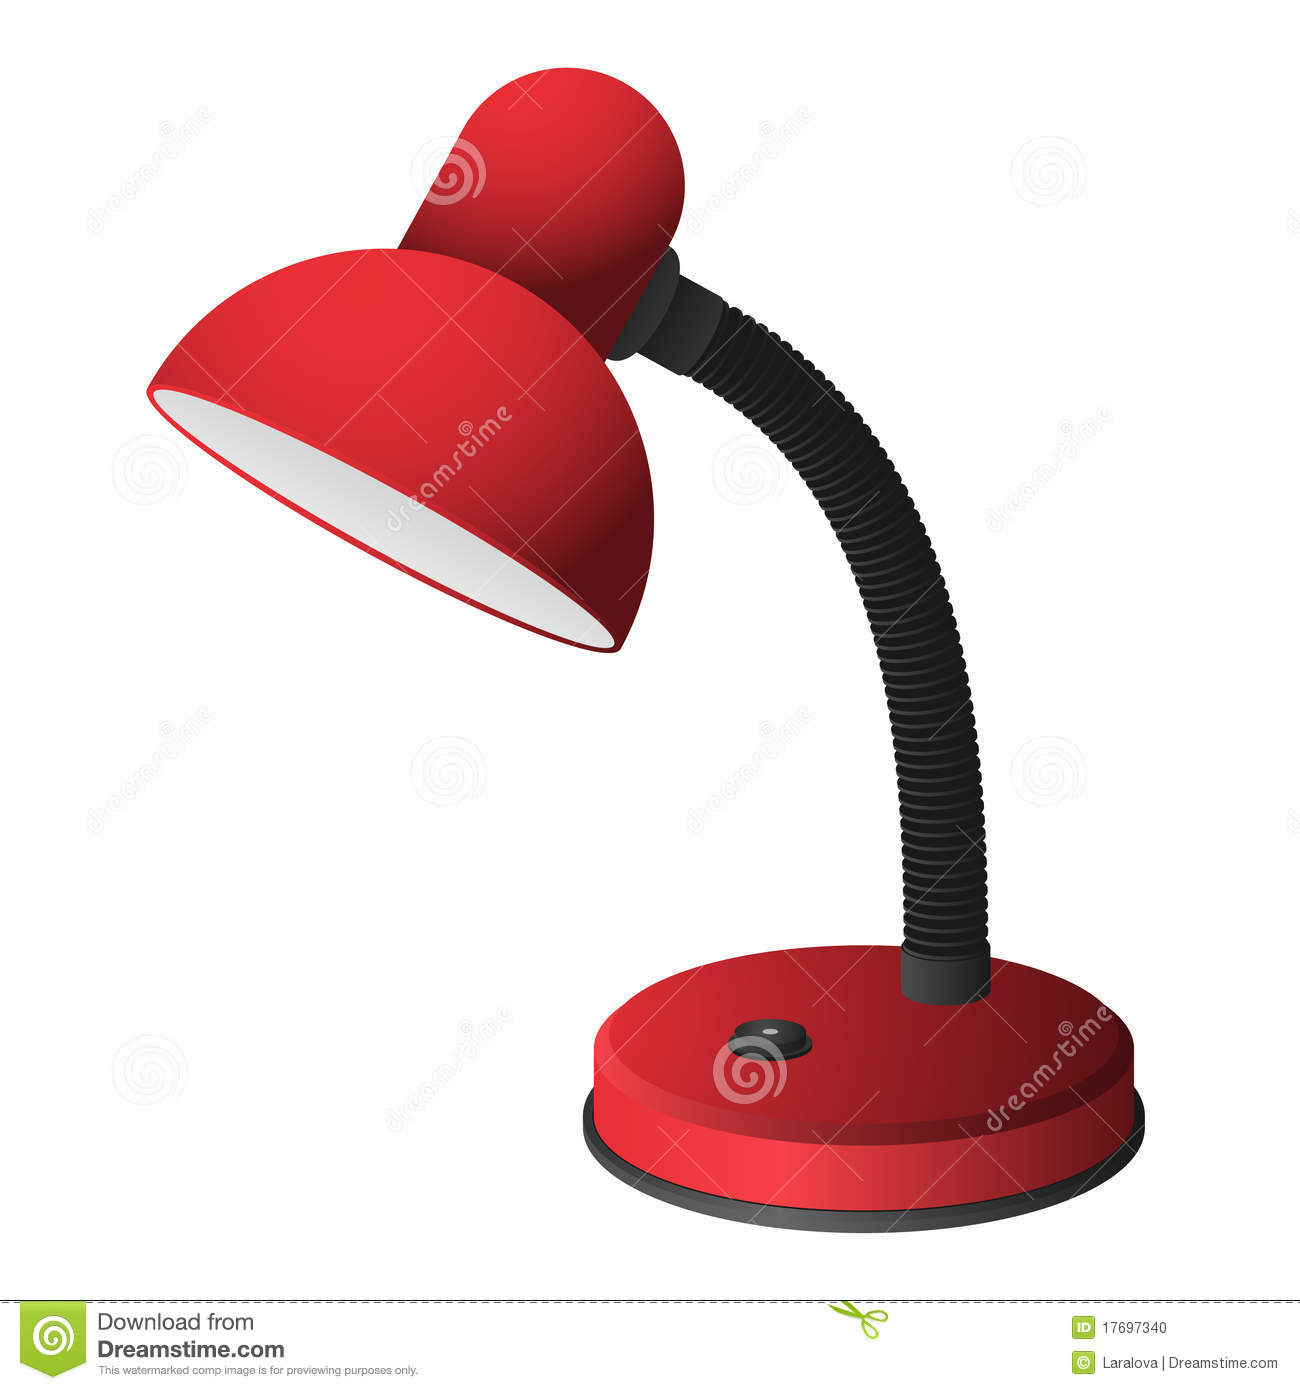 Red Light Reading Lamp Red Desk Lamp Stock Vector Image Of Illustration Design